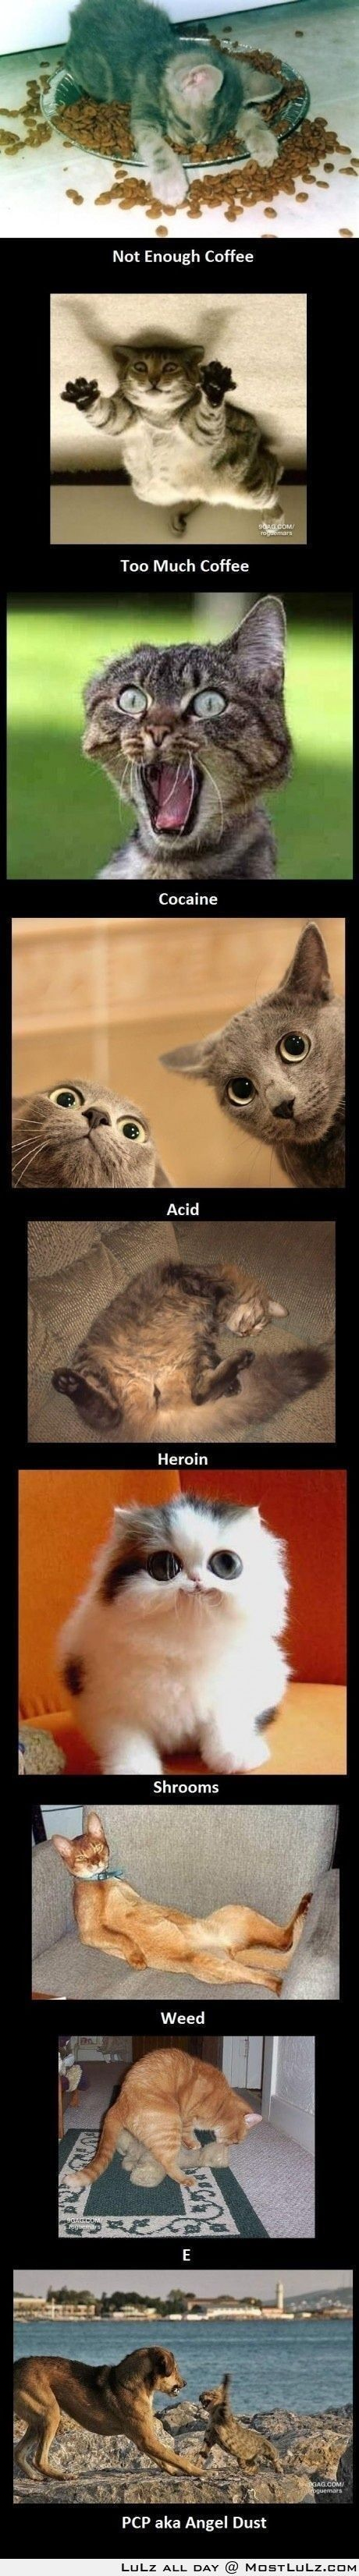 Daily Humor - Enjoy The Laughs: Cats, Animals, Funny Cat, Drugs, Crazy Cat, Funnies, Humor